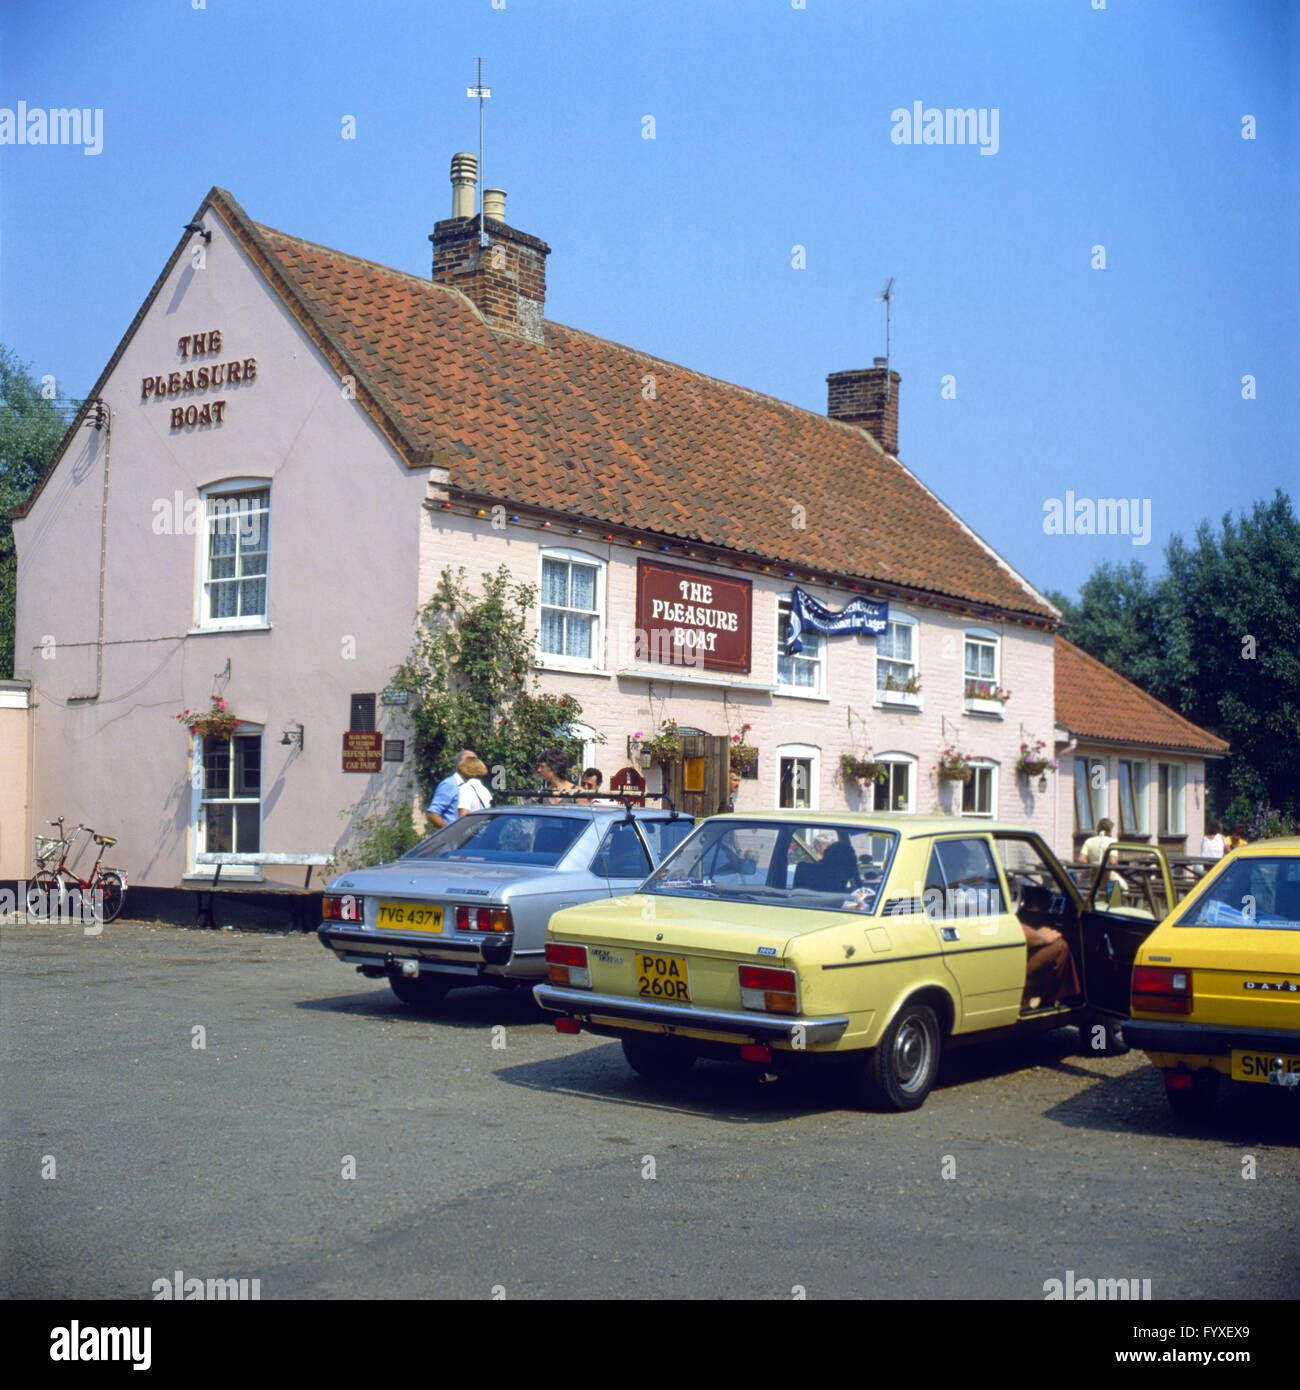 The Pleasure Boat Inn, Hickling, Norfolk, England - Stock Image